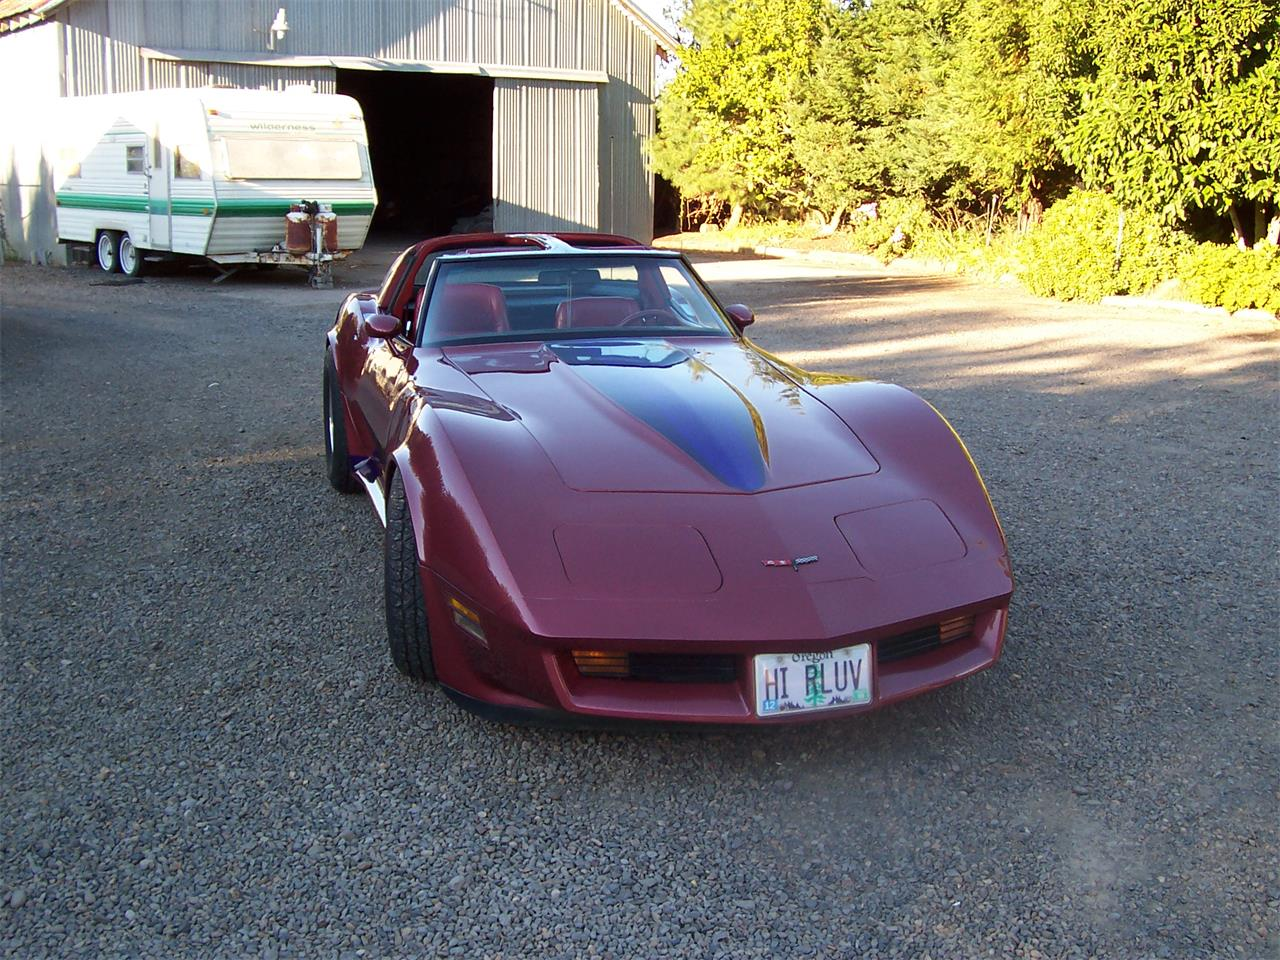 Large Picture of 1981 Chevrolet Corvette - $18,950.00 Offered by a Private Seller - MYXB